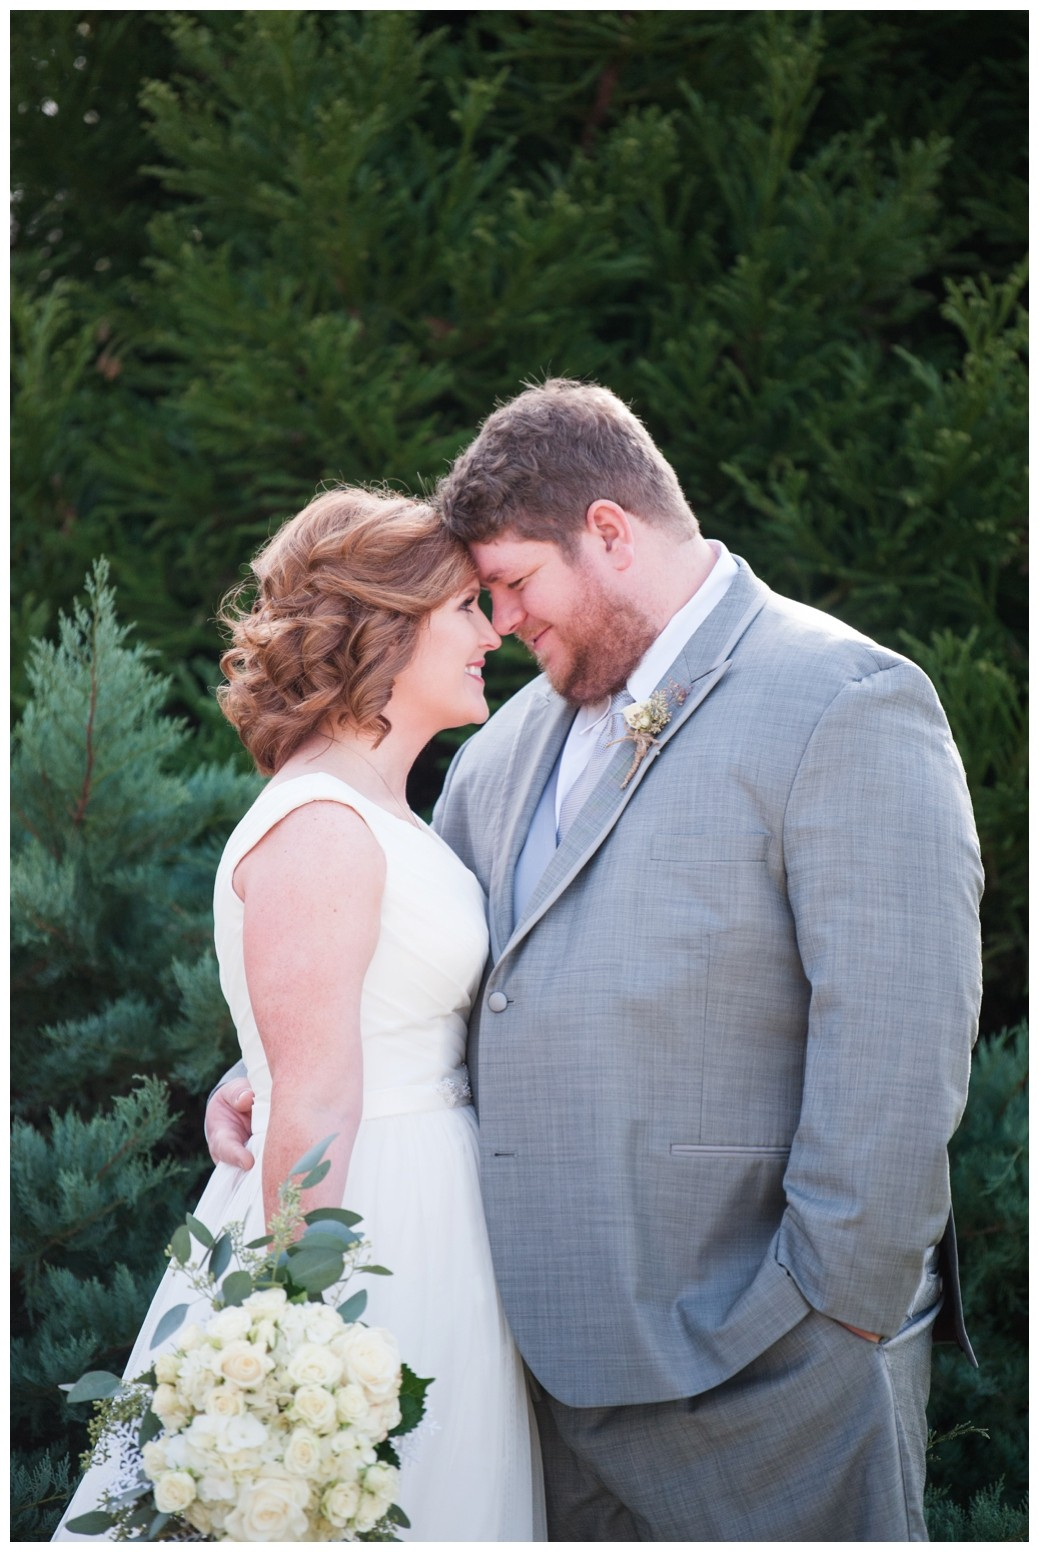 bride and groom smiling with foreheads together in front of greenery